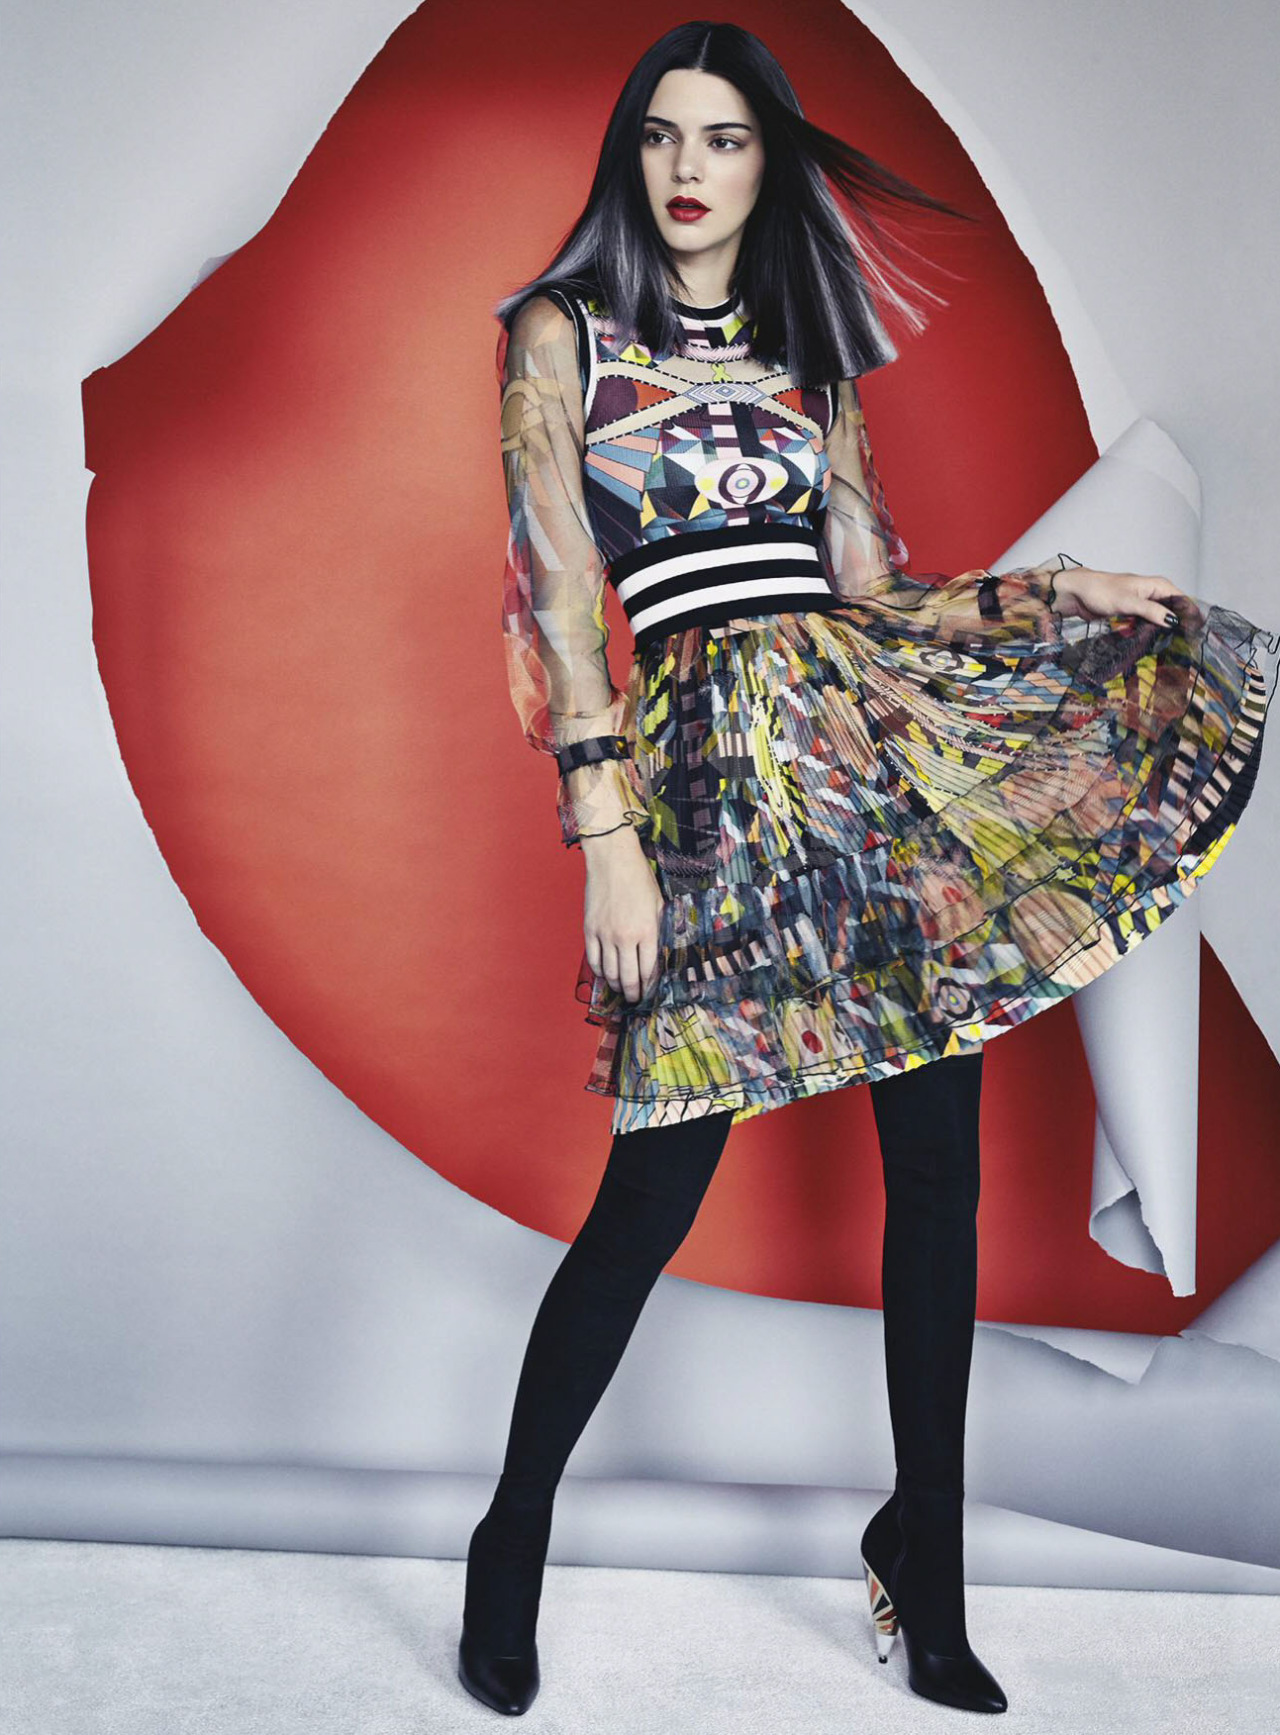 kendall-jenner-by-patrick-demarchelier-5